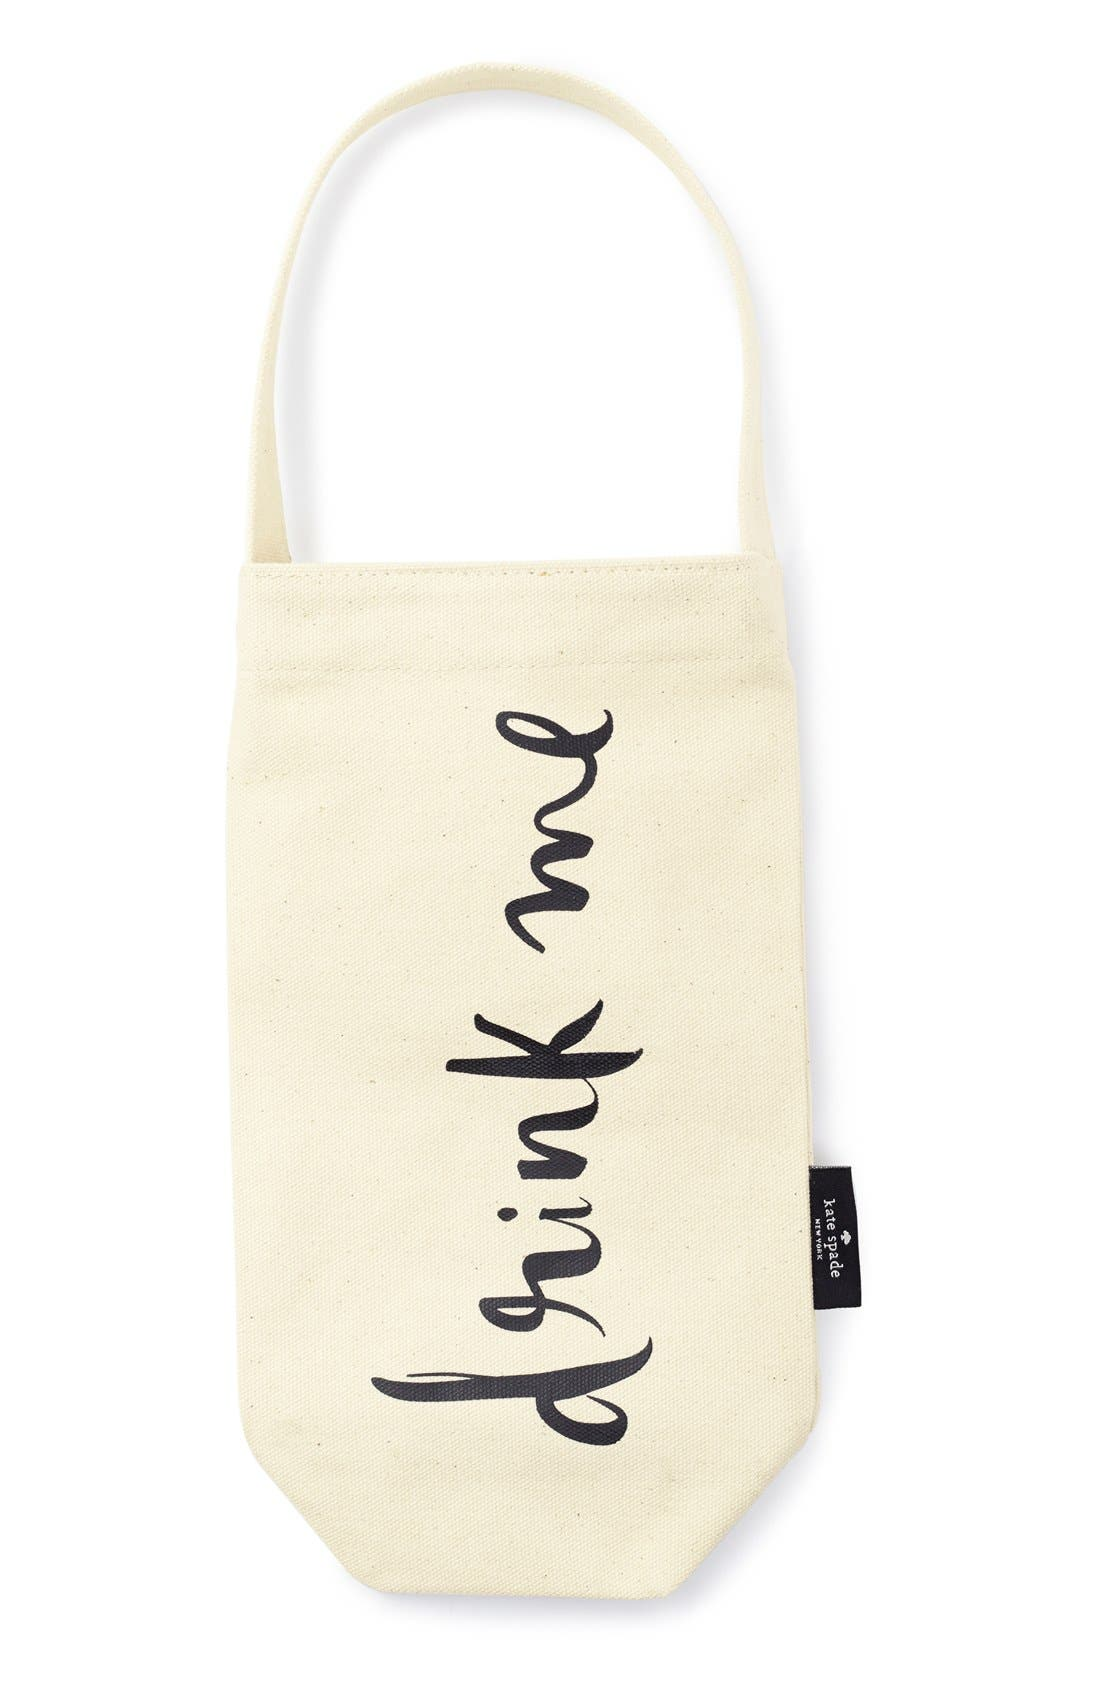 KATE SPADE NEW YORK, 'drink me' wine tote, Main thumbnail 1, color, 250